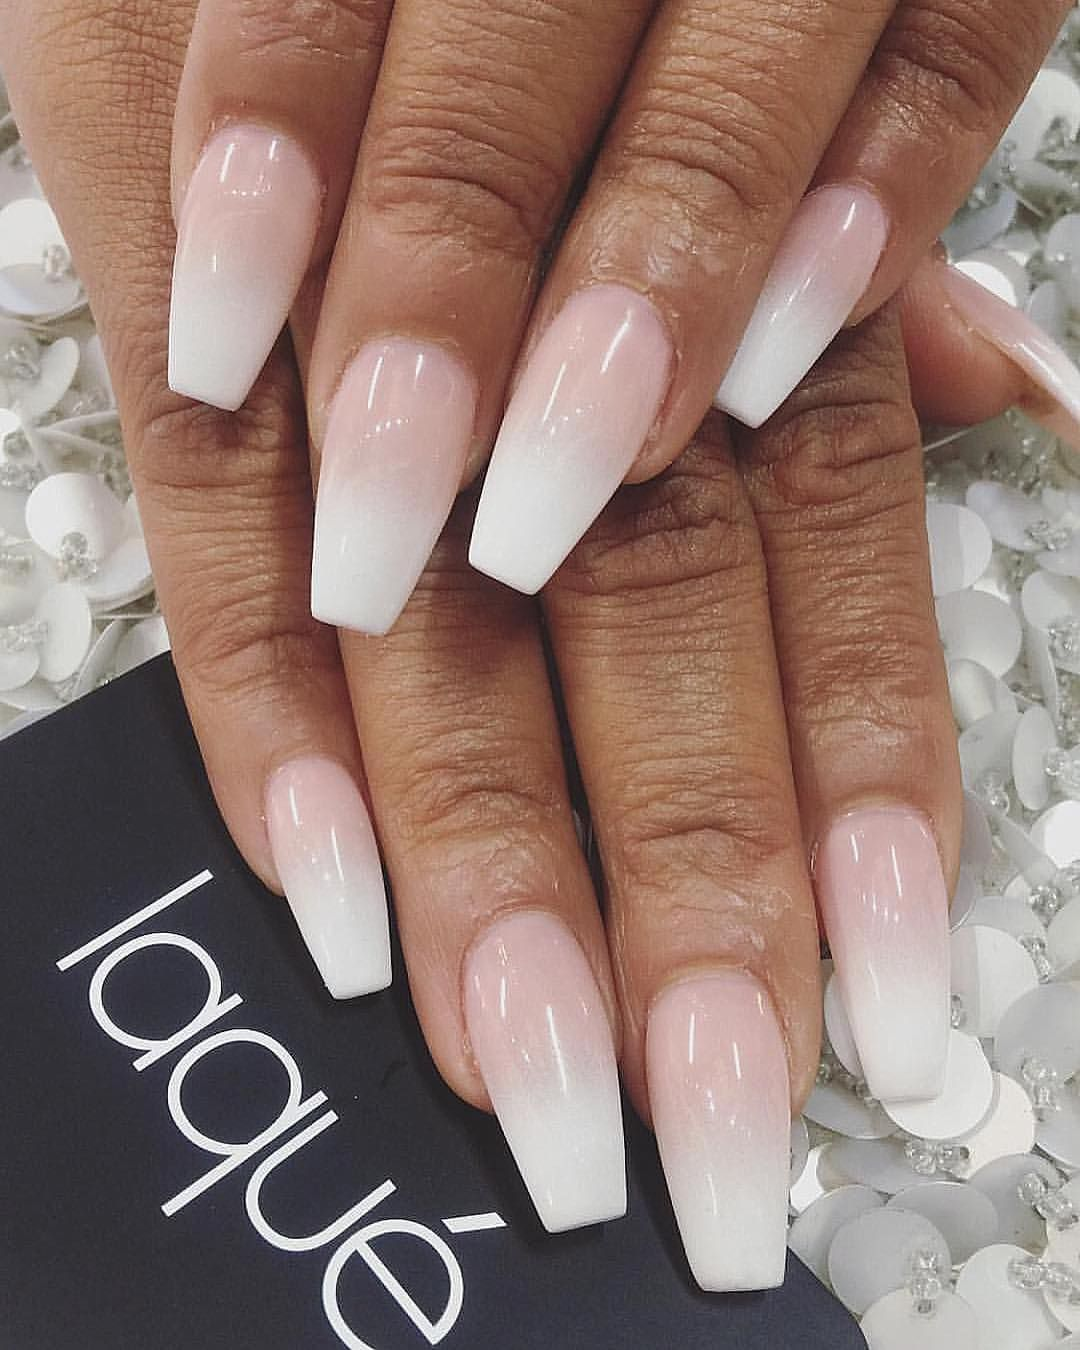 Full Set With Ombre 35 Full Set 10 Ombre Total 45 Extras Available Soak Off Removal Of Old Full Set Acrylic Nails Nail Extensions Acrylic Full Set Acrylic